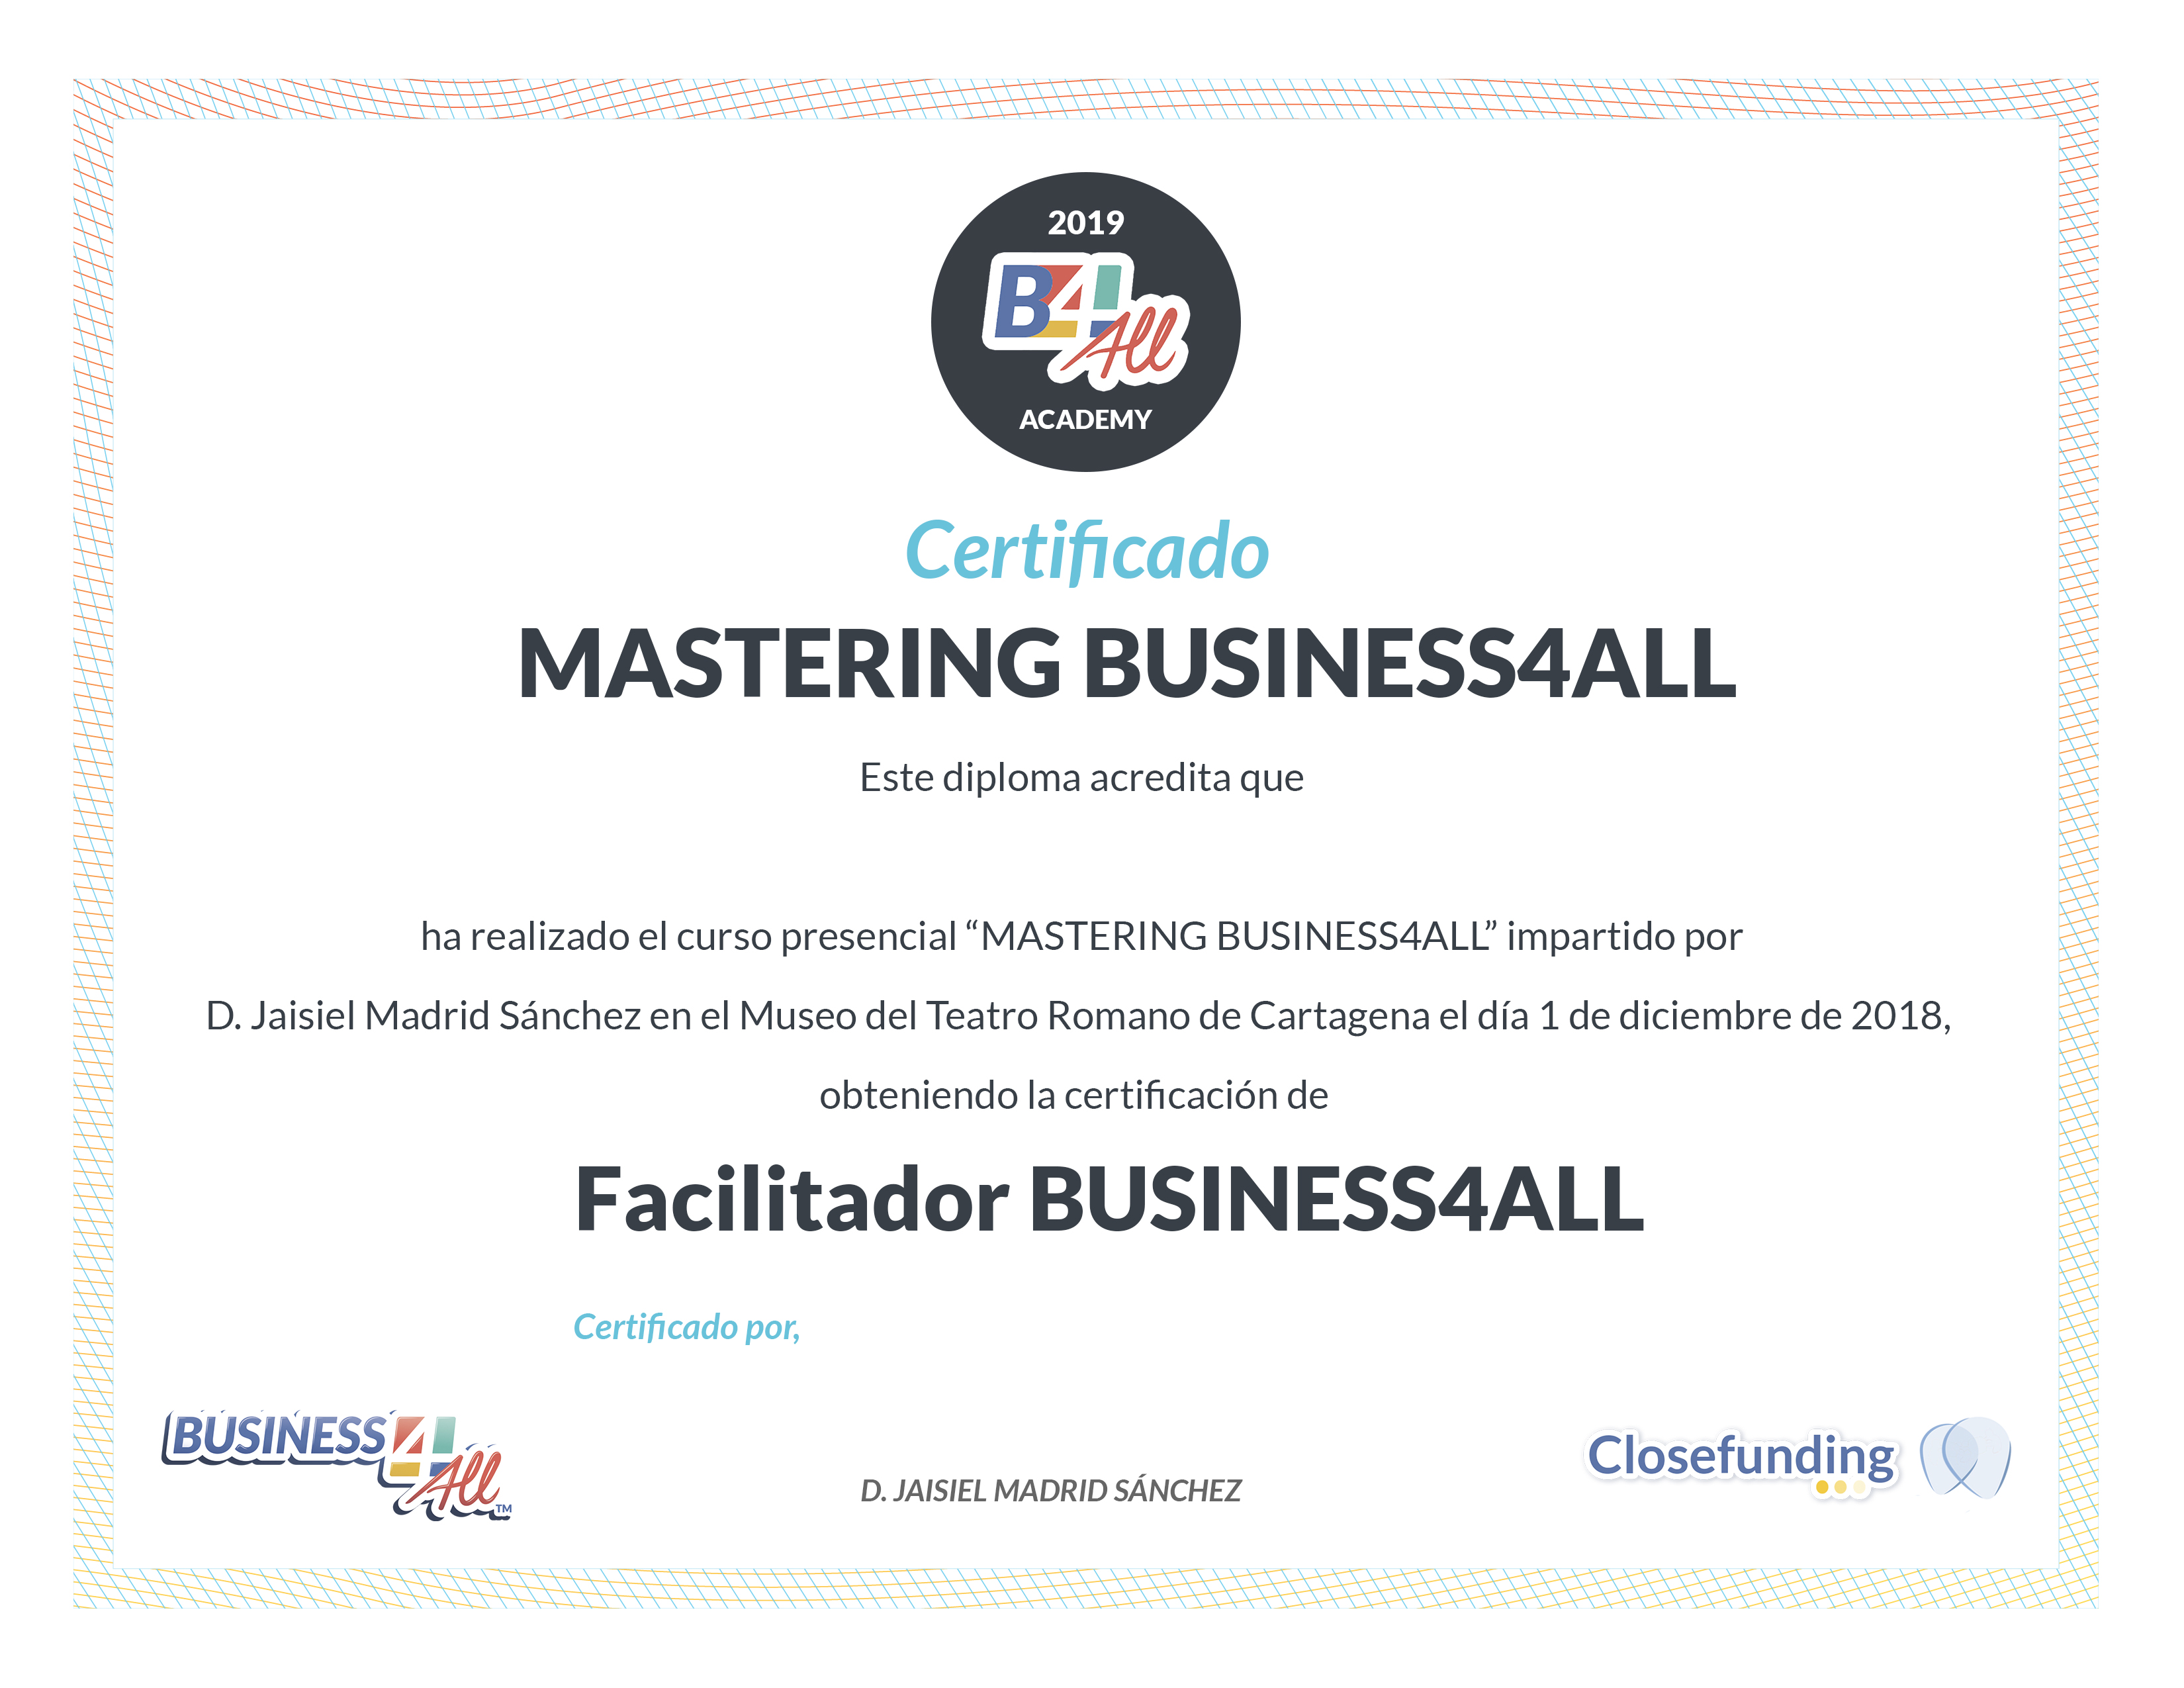 Image of completion certificate as a Business4ALL Facilitator